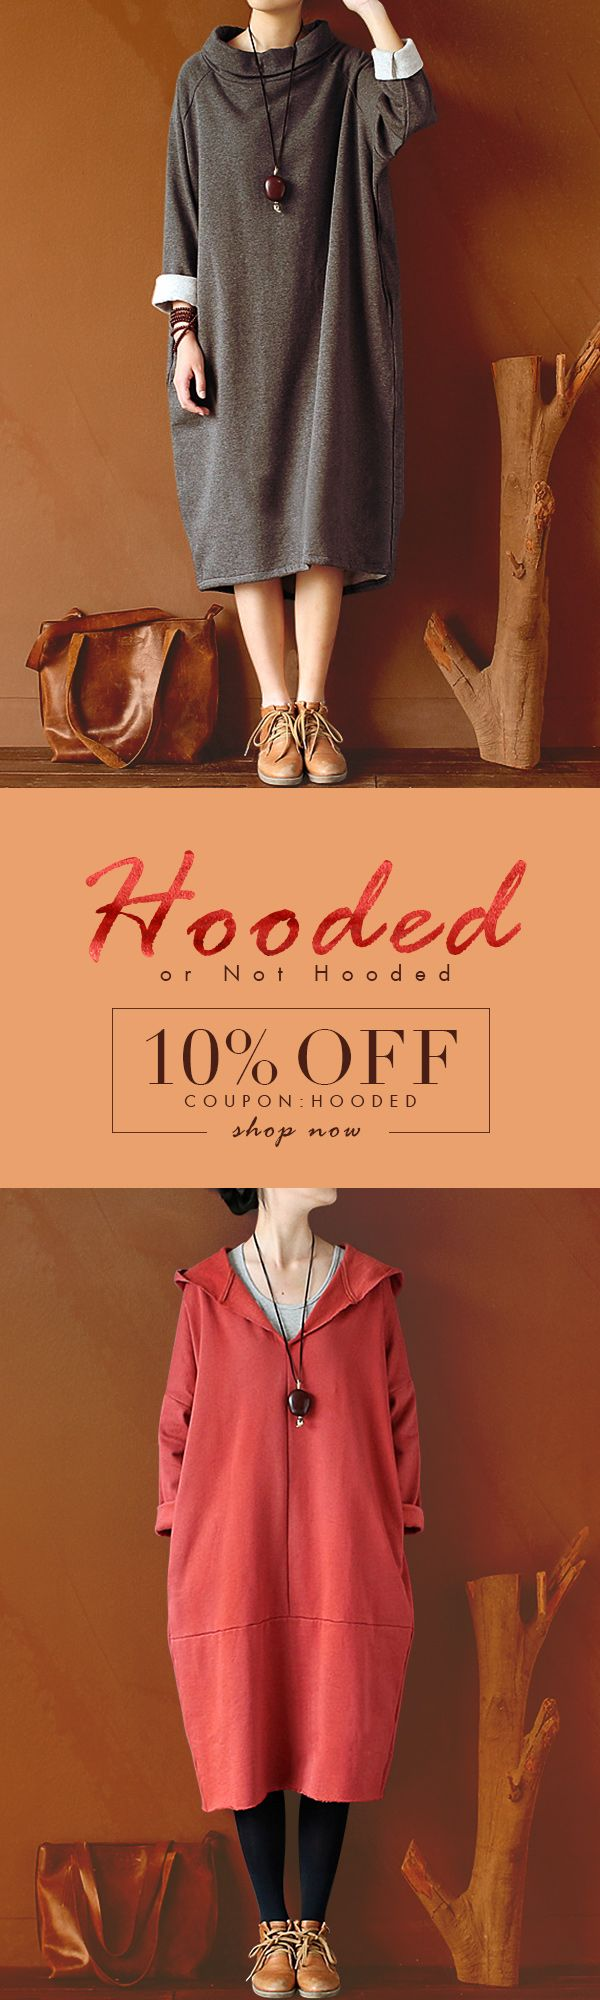 [Fall Fashion] Shop with us, grab the coupon and enjoy extra 10% OFF discount